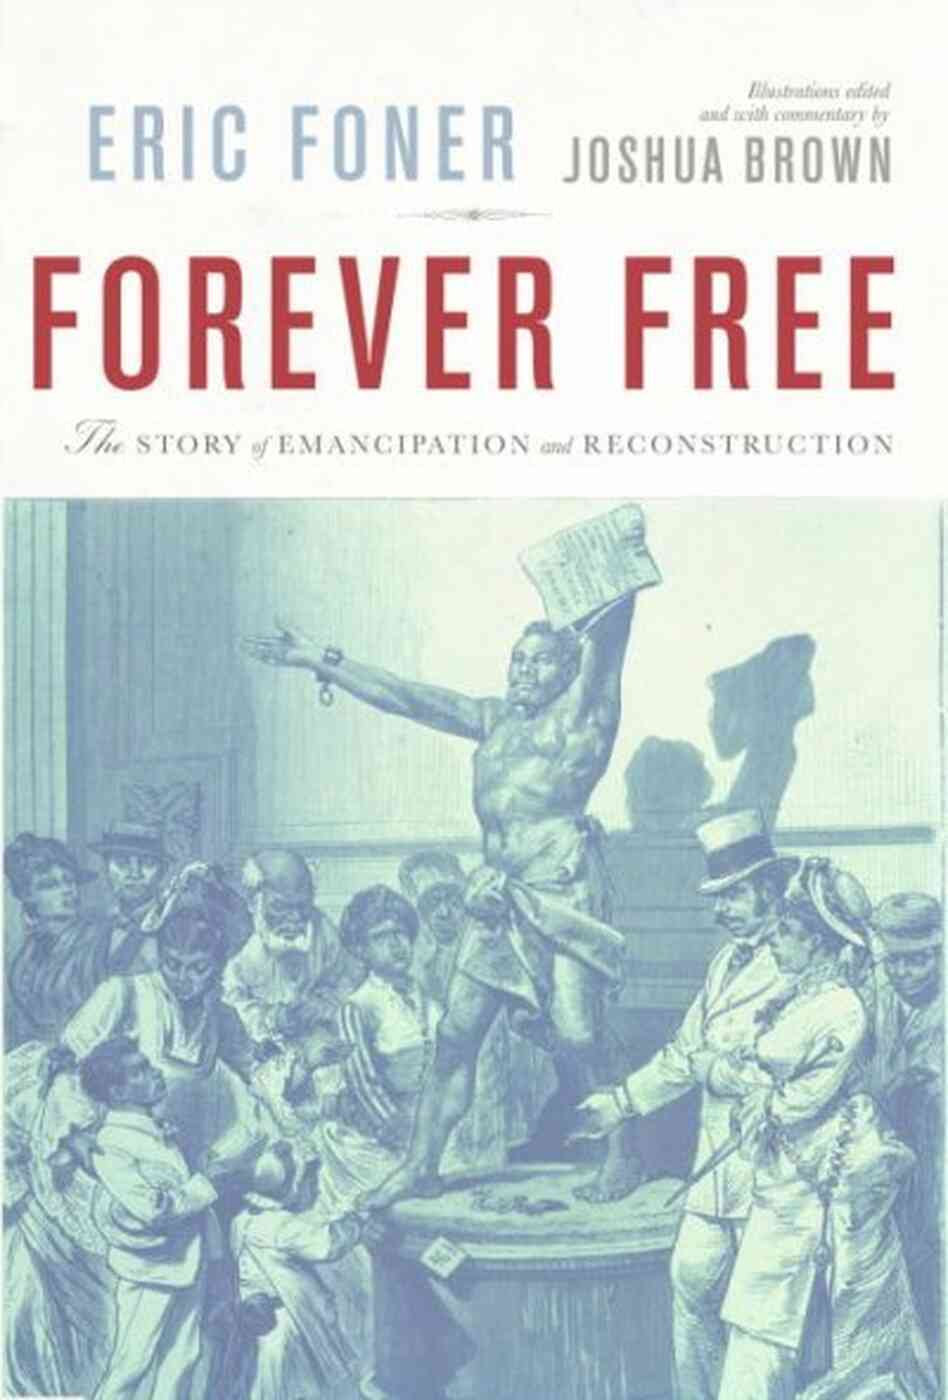 An analysis of the study of the writings of eric foner the author of american freedom